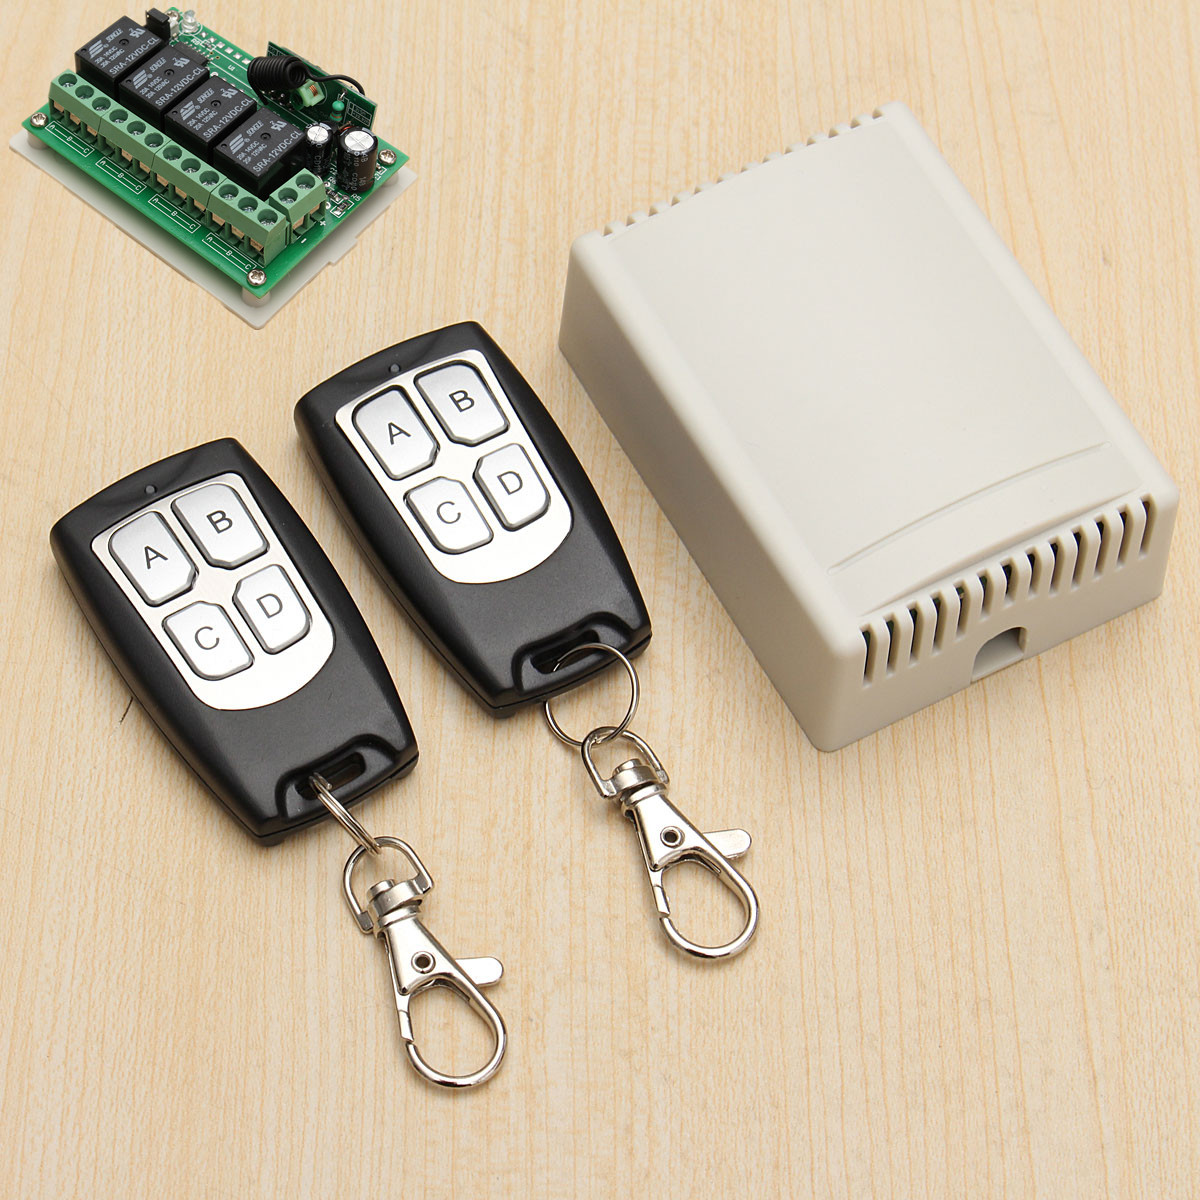 Details about 12V 4CH Channel 200M Wireless Remote Control Relay Switch  Transceiver + Receiver